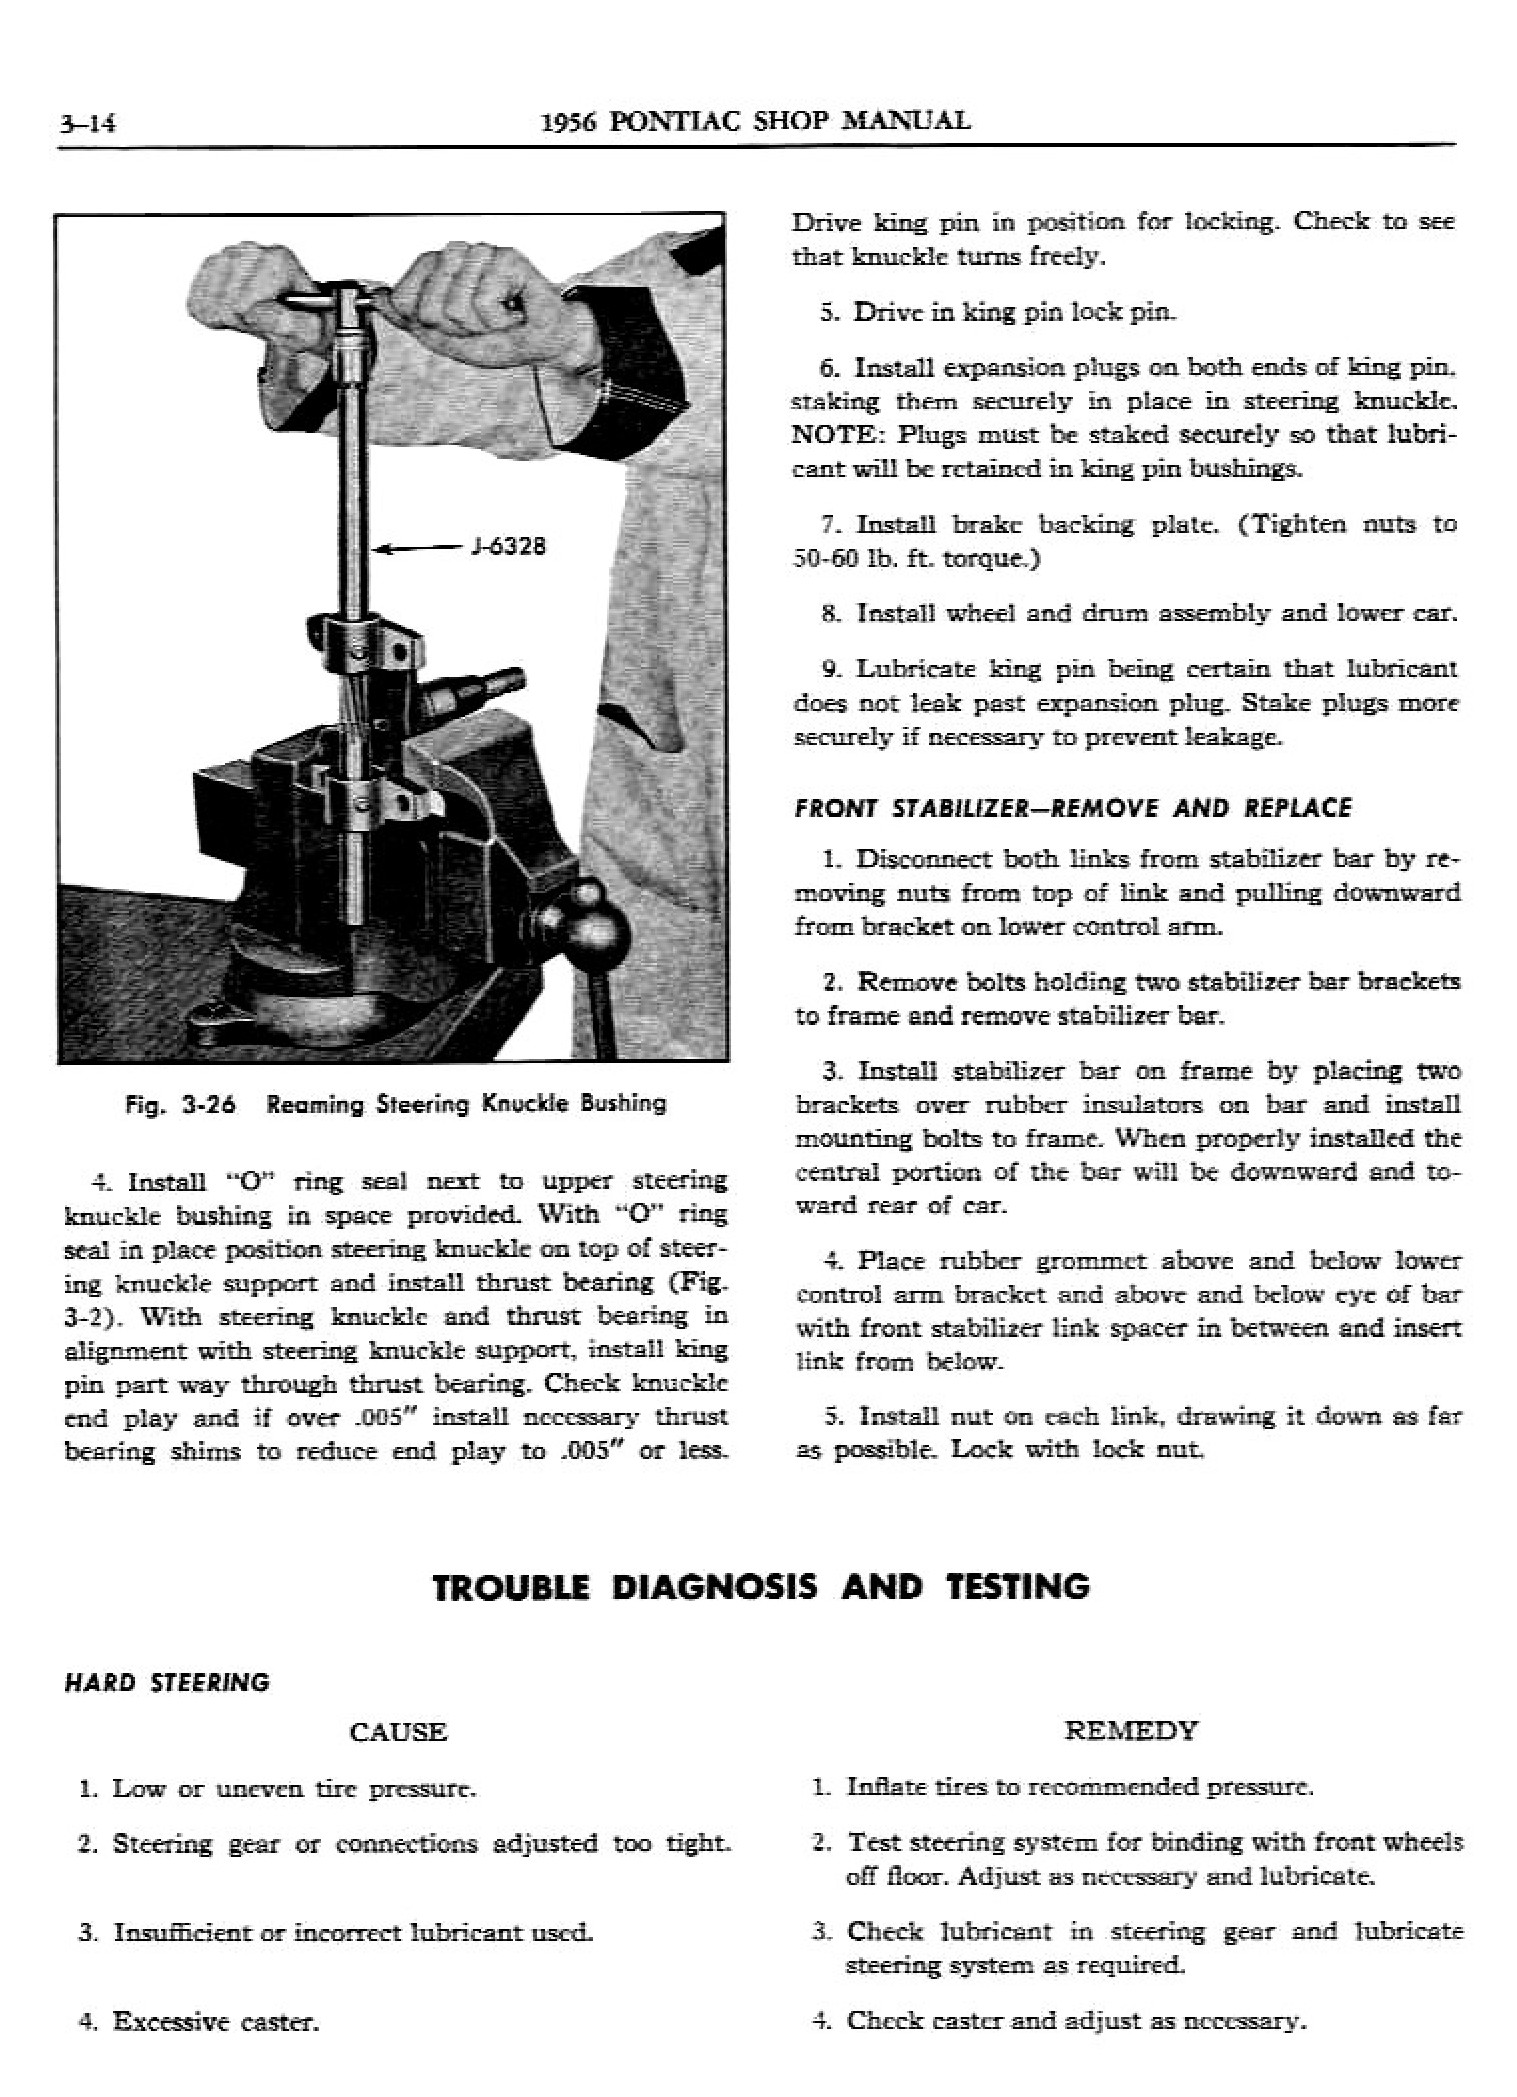 1956 Pontiac Shop Manual- Front Suspension Page 14 of 20